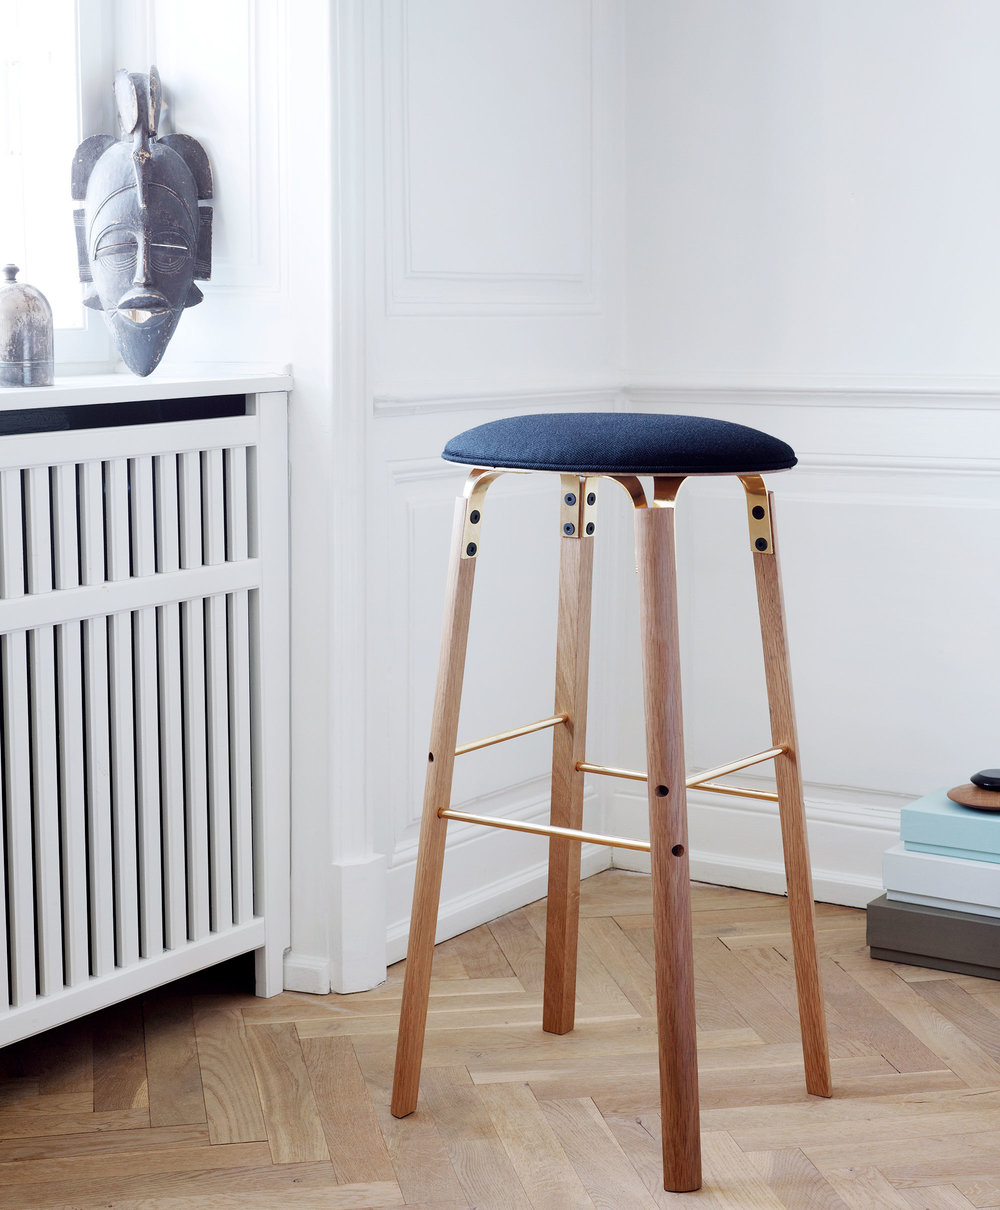 flatiron stool - Furniture/Product